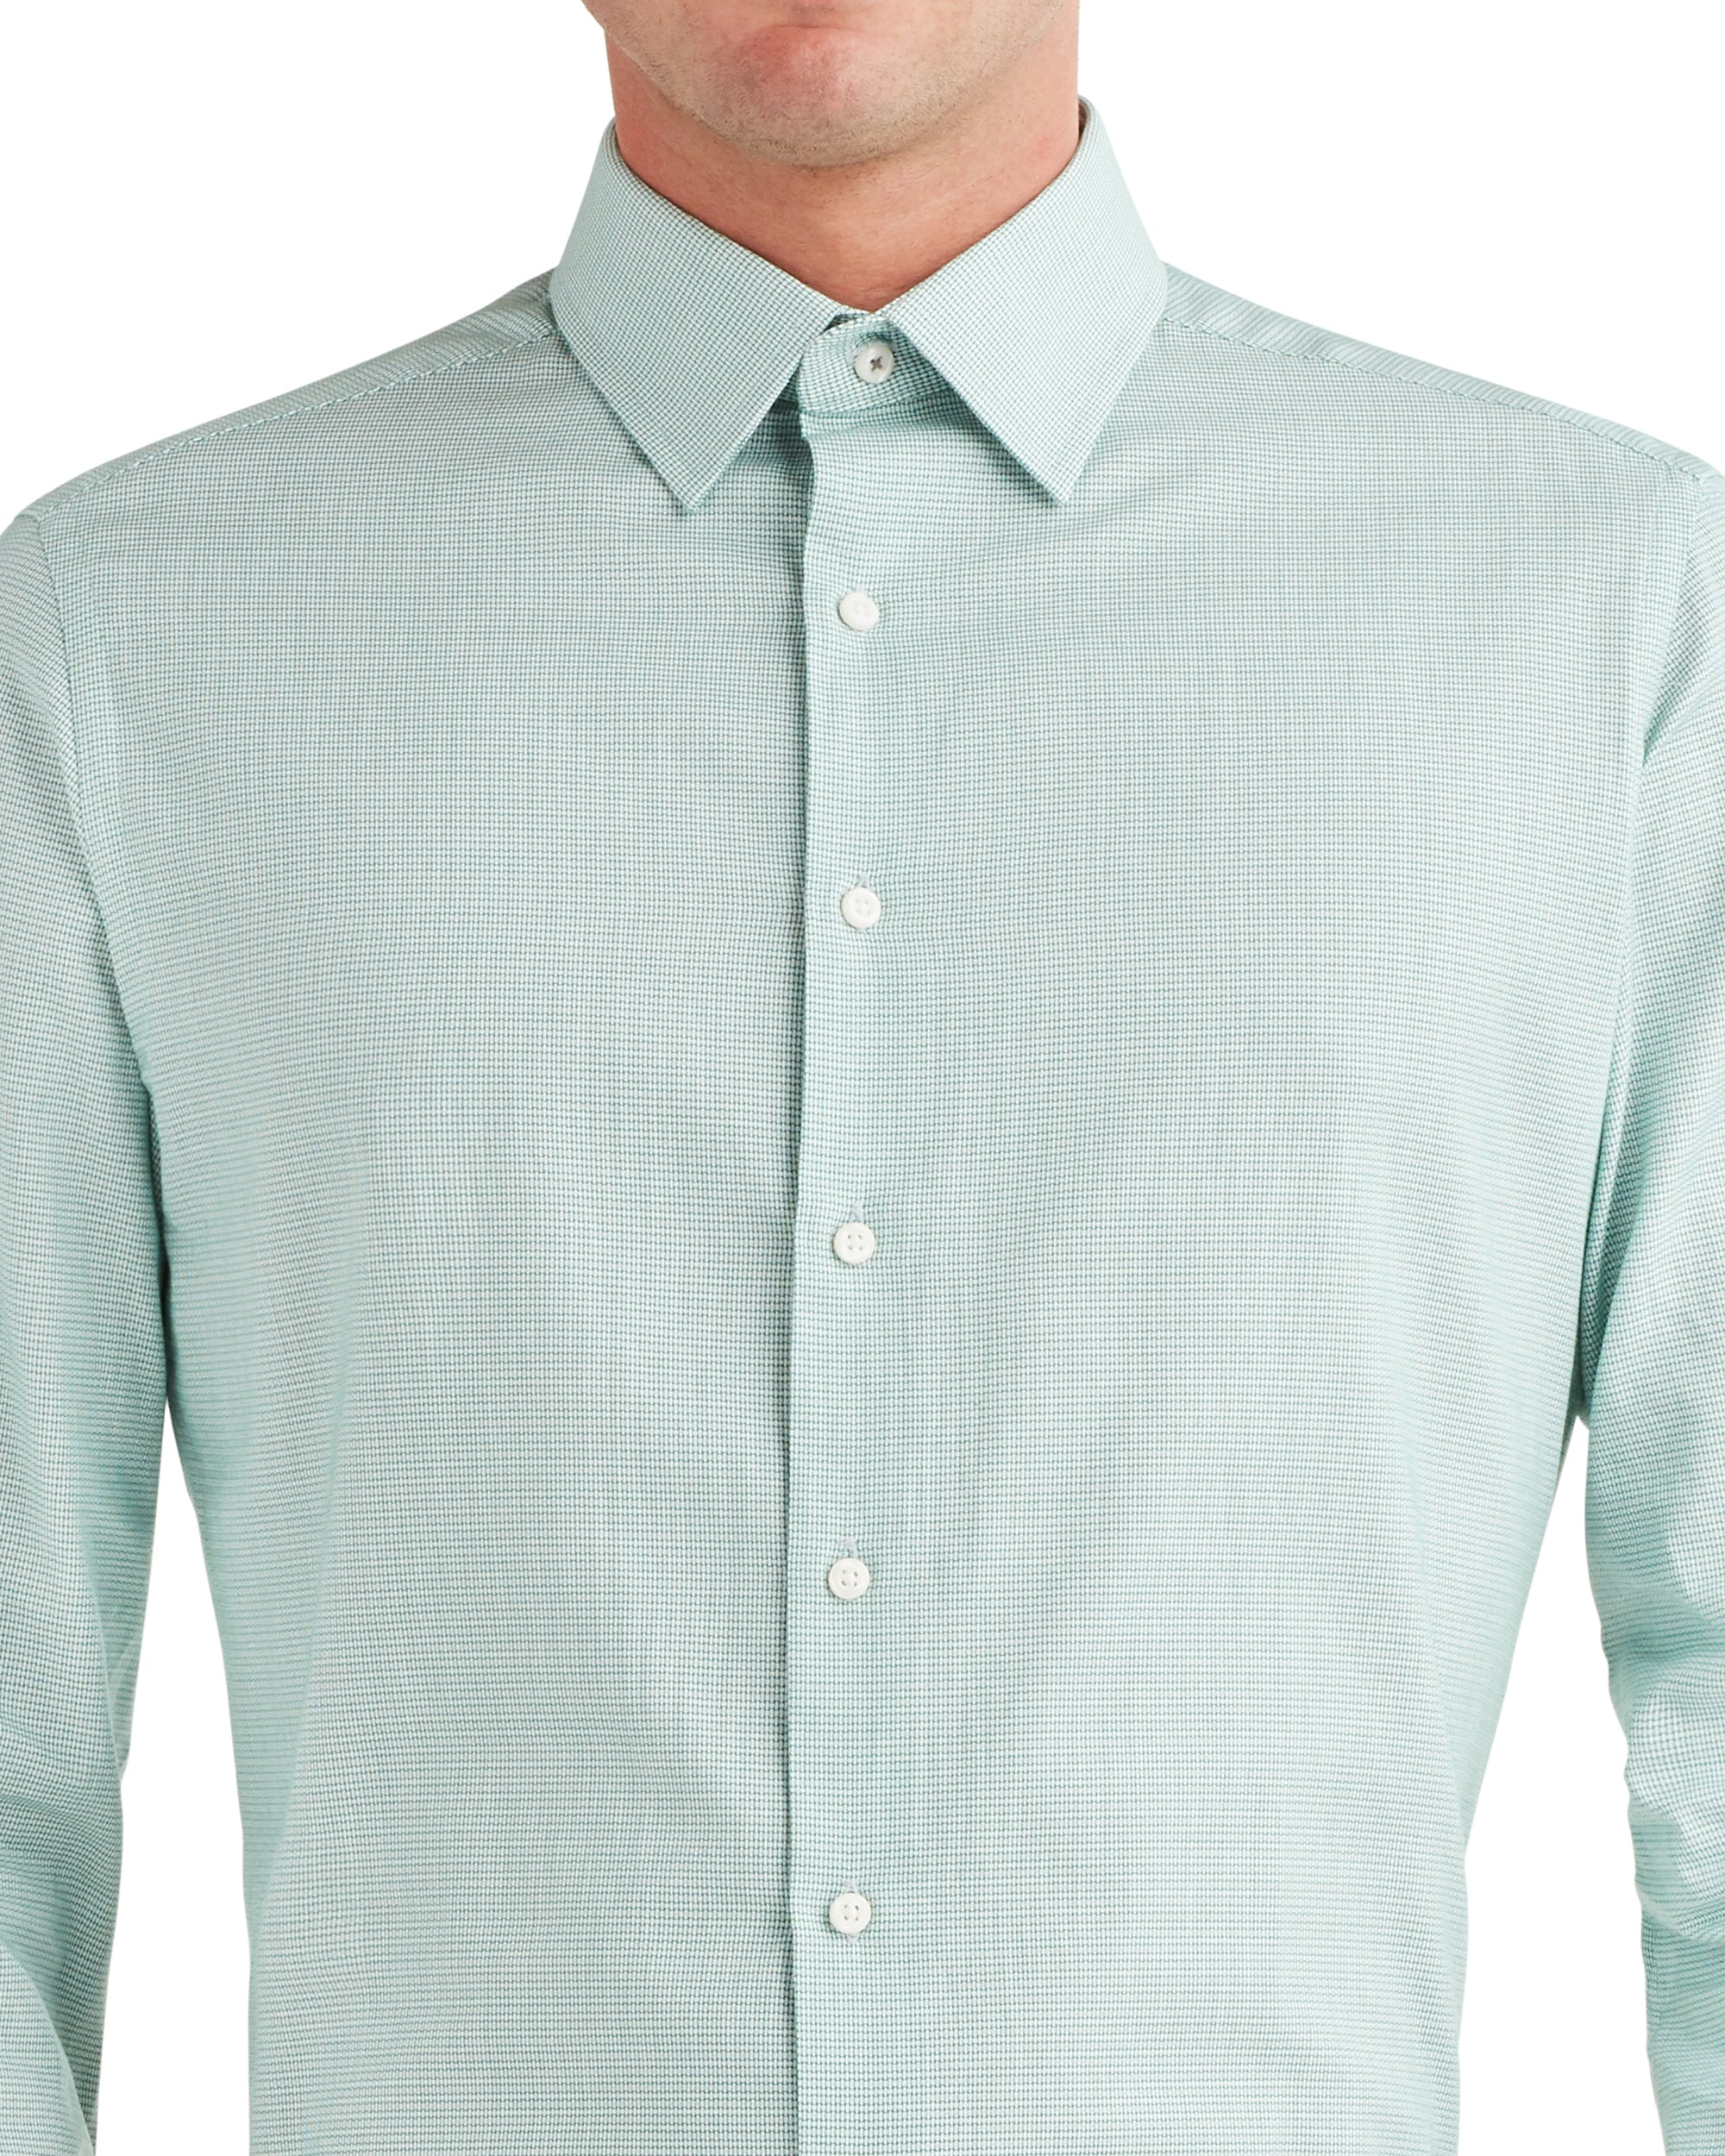 Unsolid Dobby Slim Fit Dress Shirt - Green